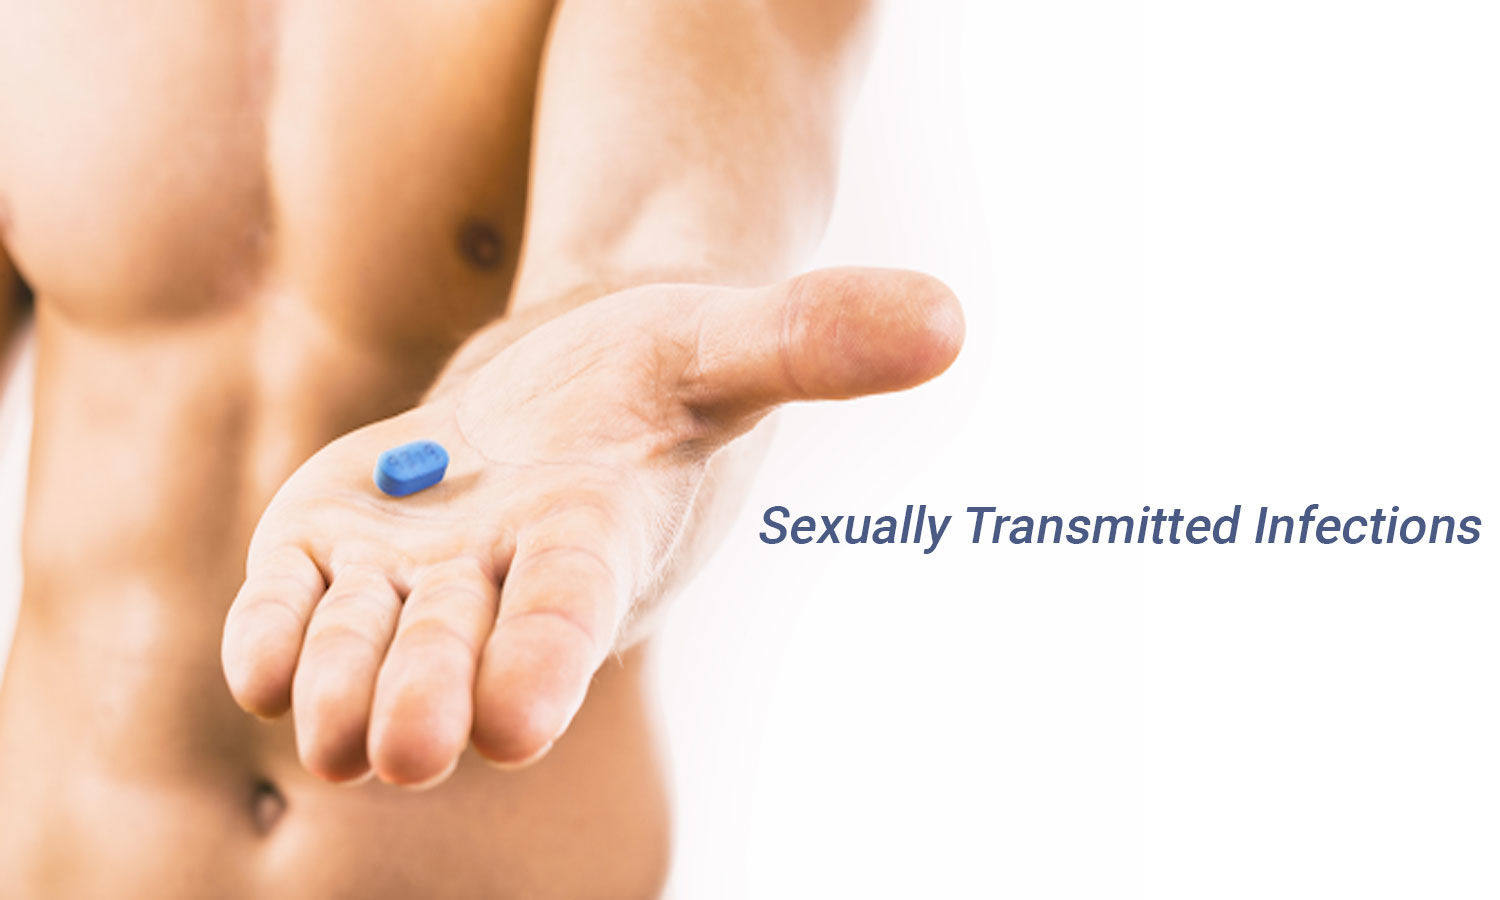 AIIMS Antibiotics guidance on Sexually Transmitted Infections